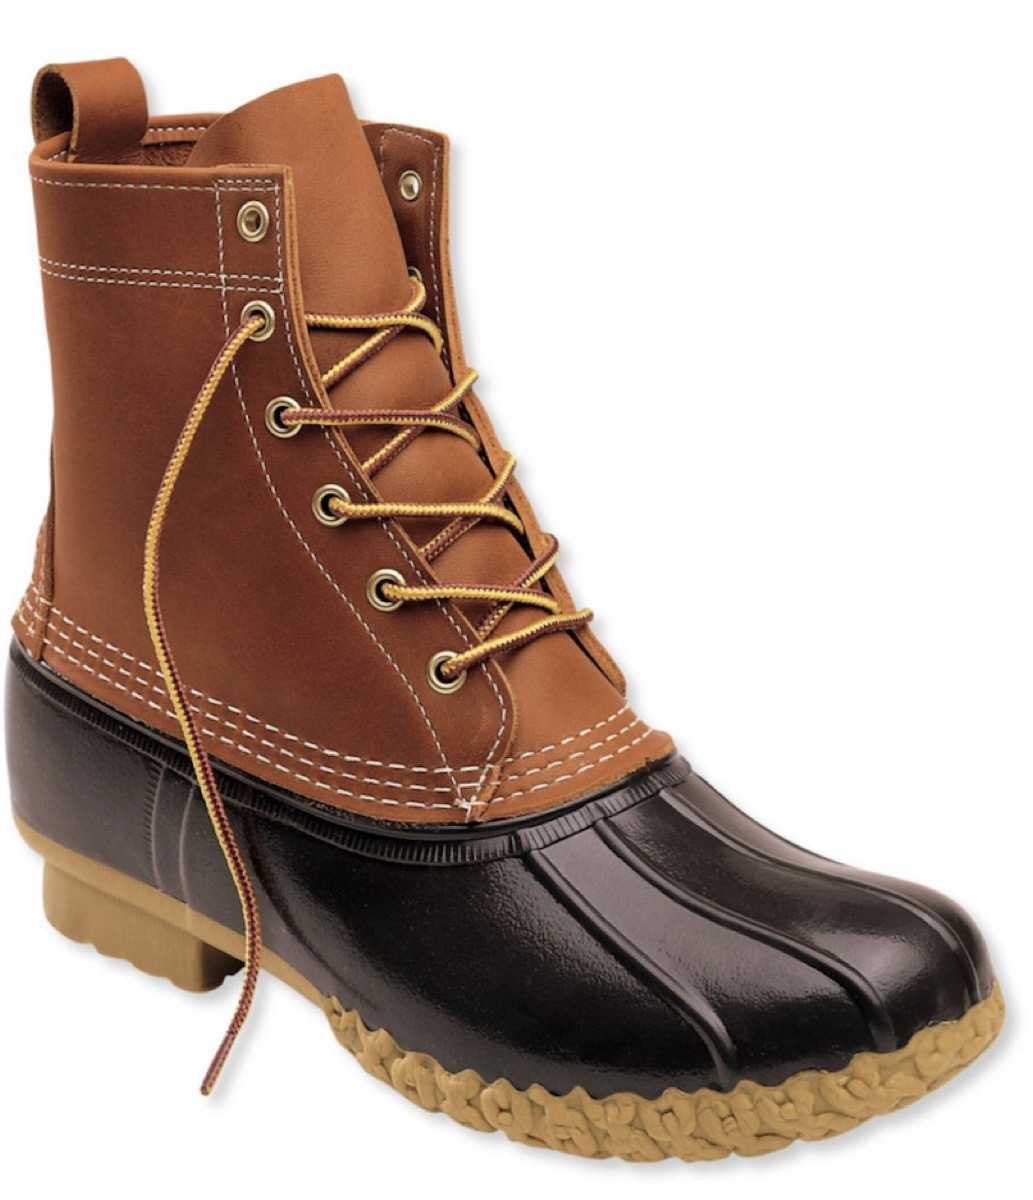 LLBean Bean Boots Mens buy after holidays